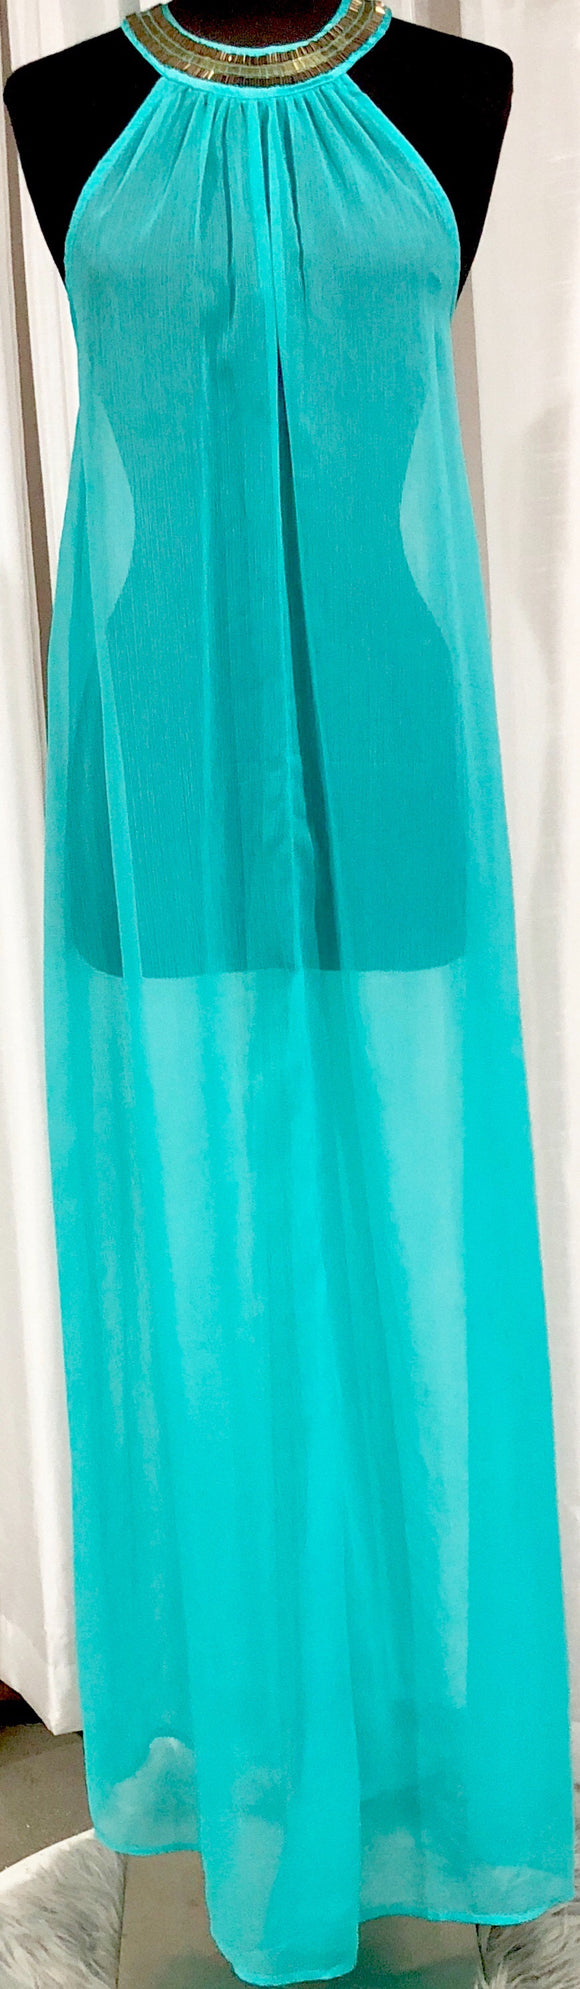 BOUTIQUE Turquoise Sheer Long Cover Up Size 6